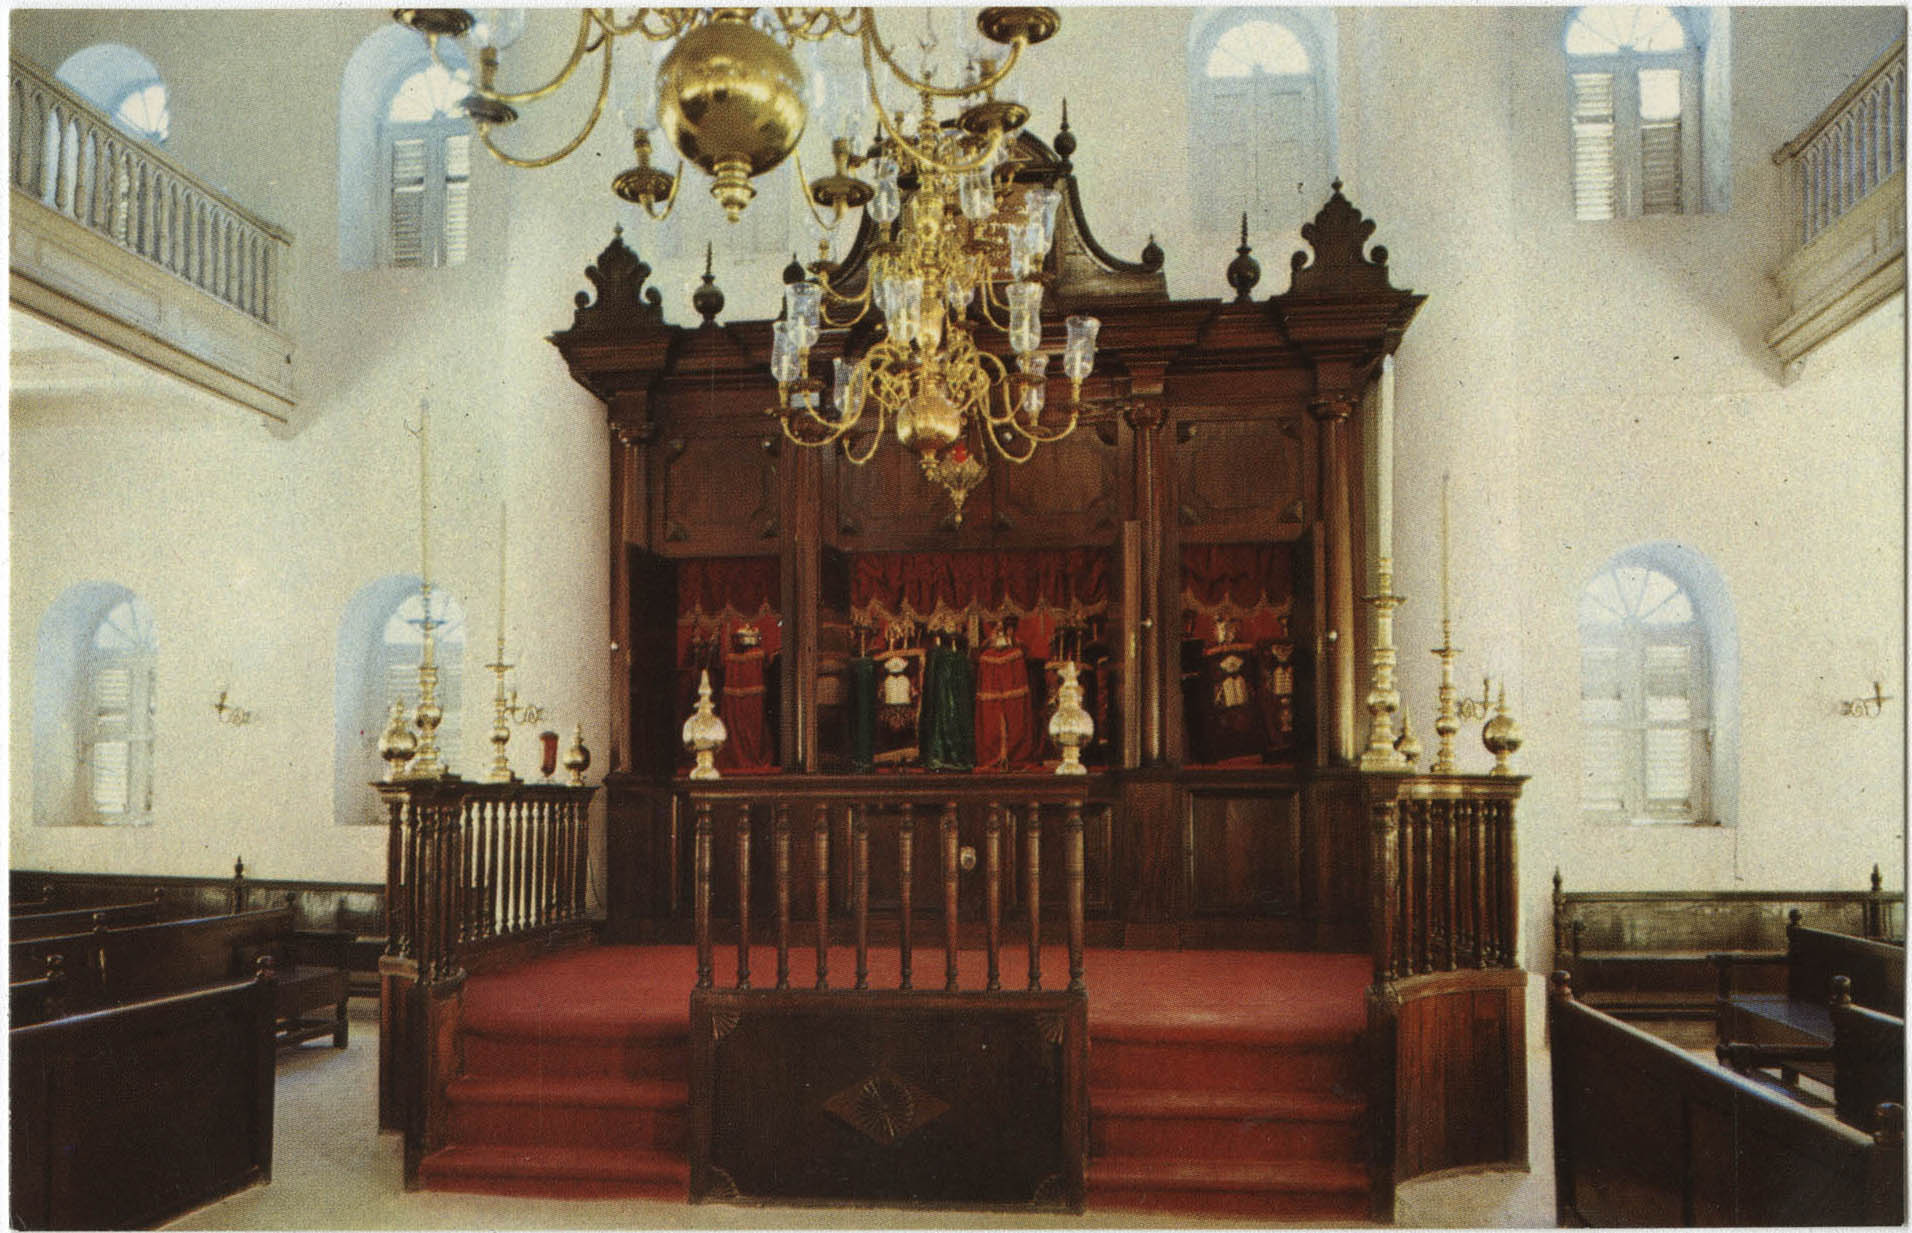 Interior of Mikve Israel-Emanuel Synagogue, dedicated in 1732, oldest in continuous use in Western Hemisphere. View is towards Hechal containing 18 scrolls and is taken from Tebah (reading platform) in center of sandcovered floor.